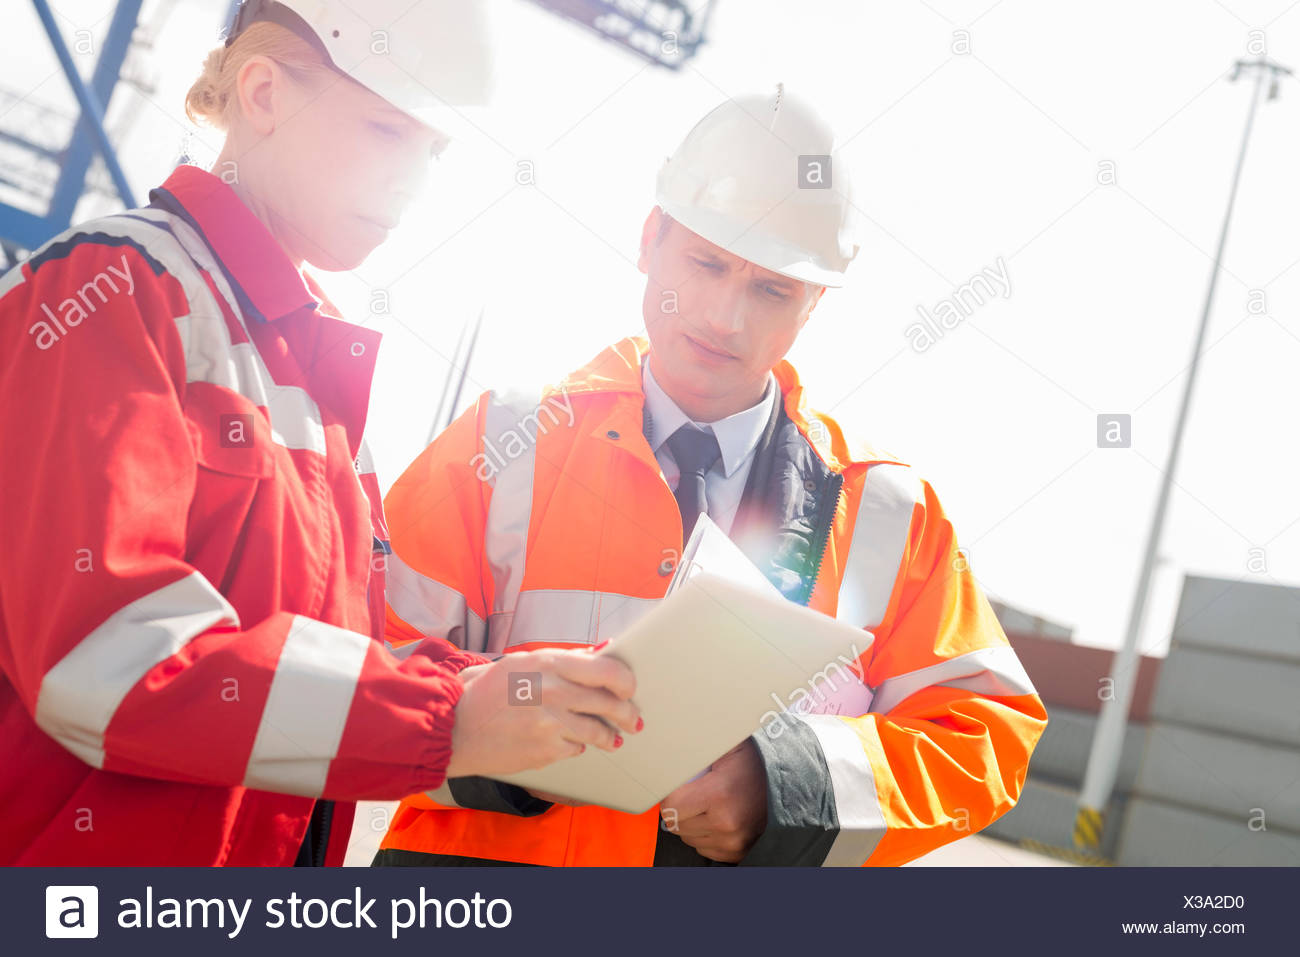 Workers discussing over tablet computer in shipping yard - Stock Image